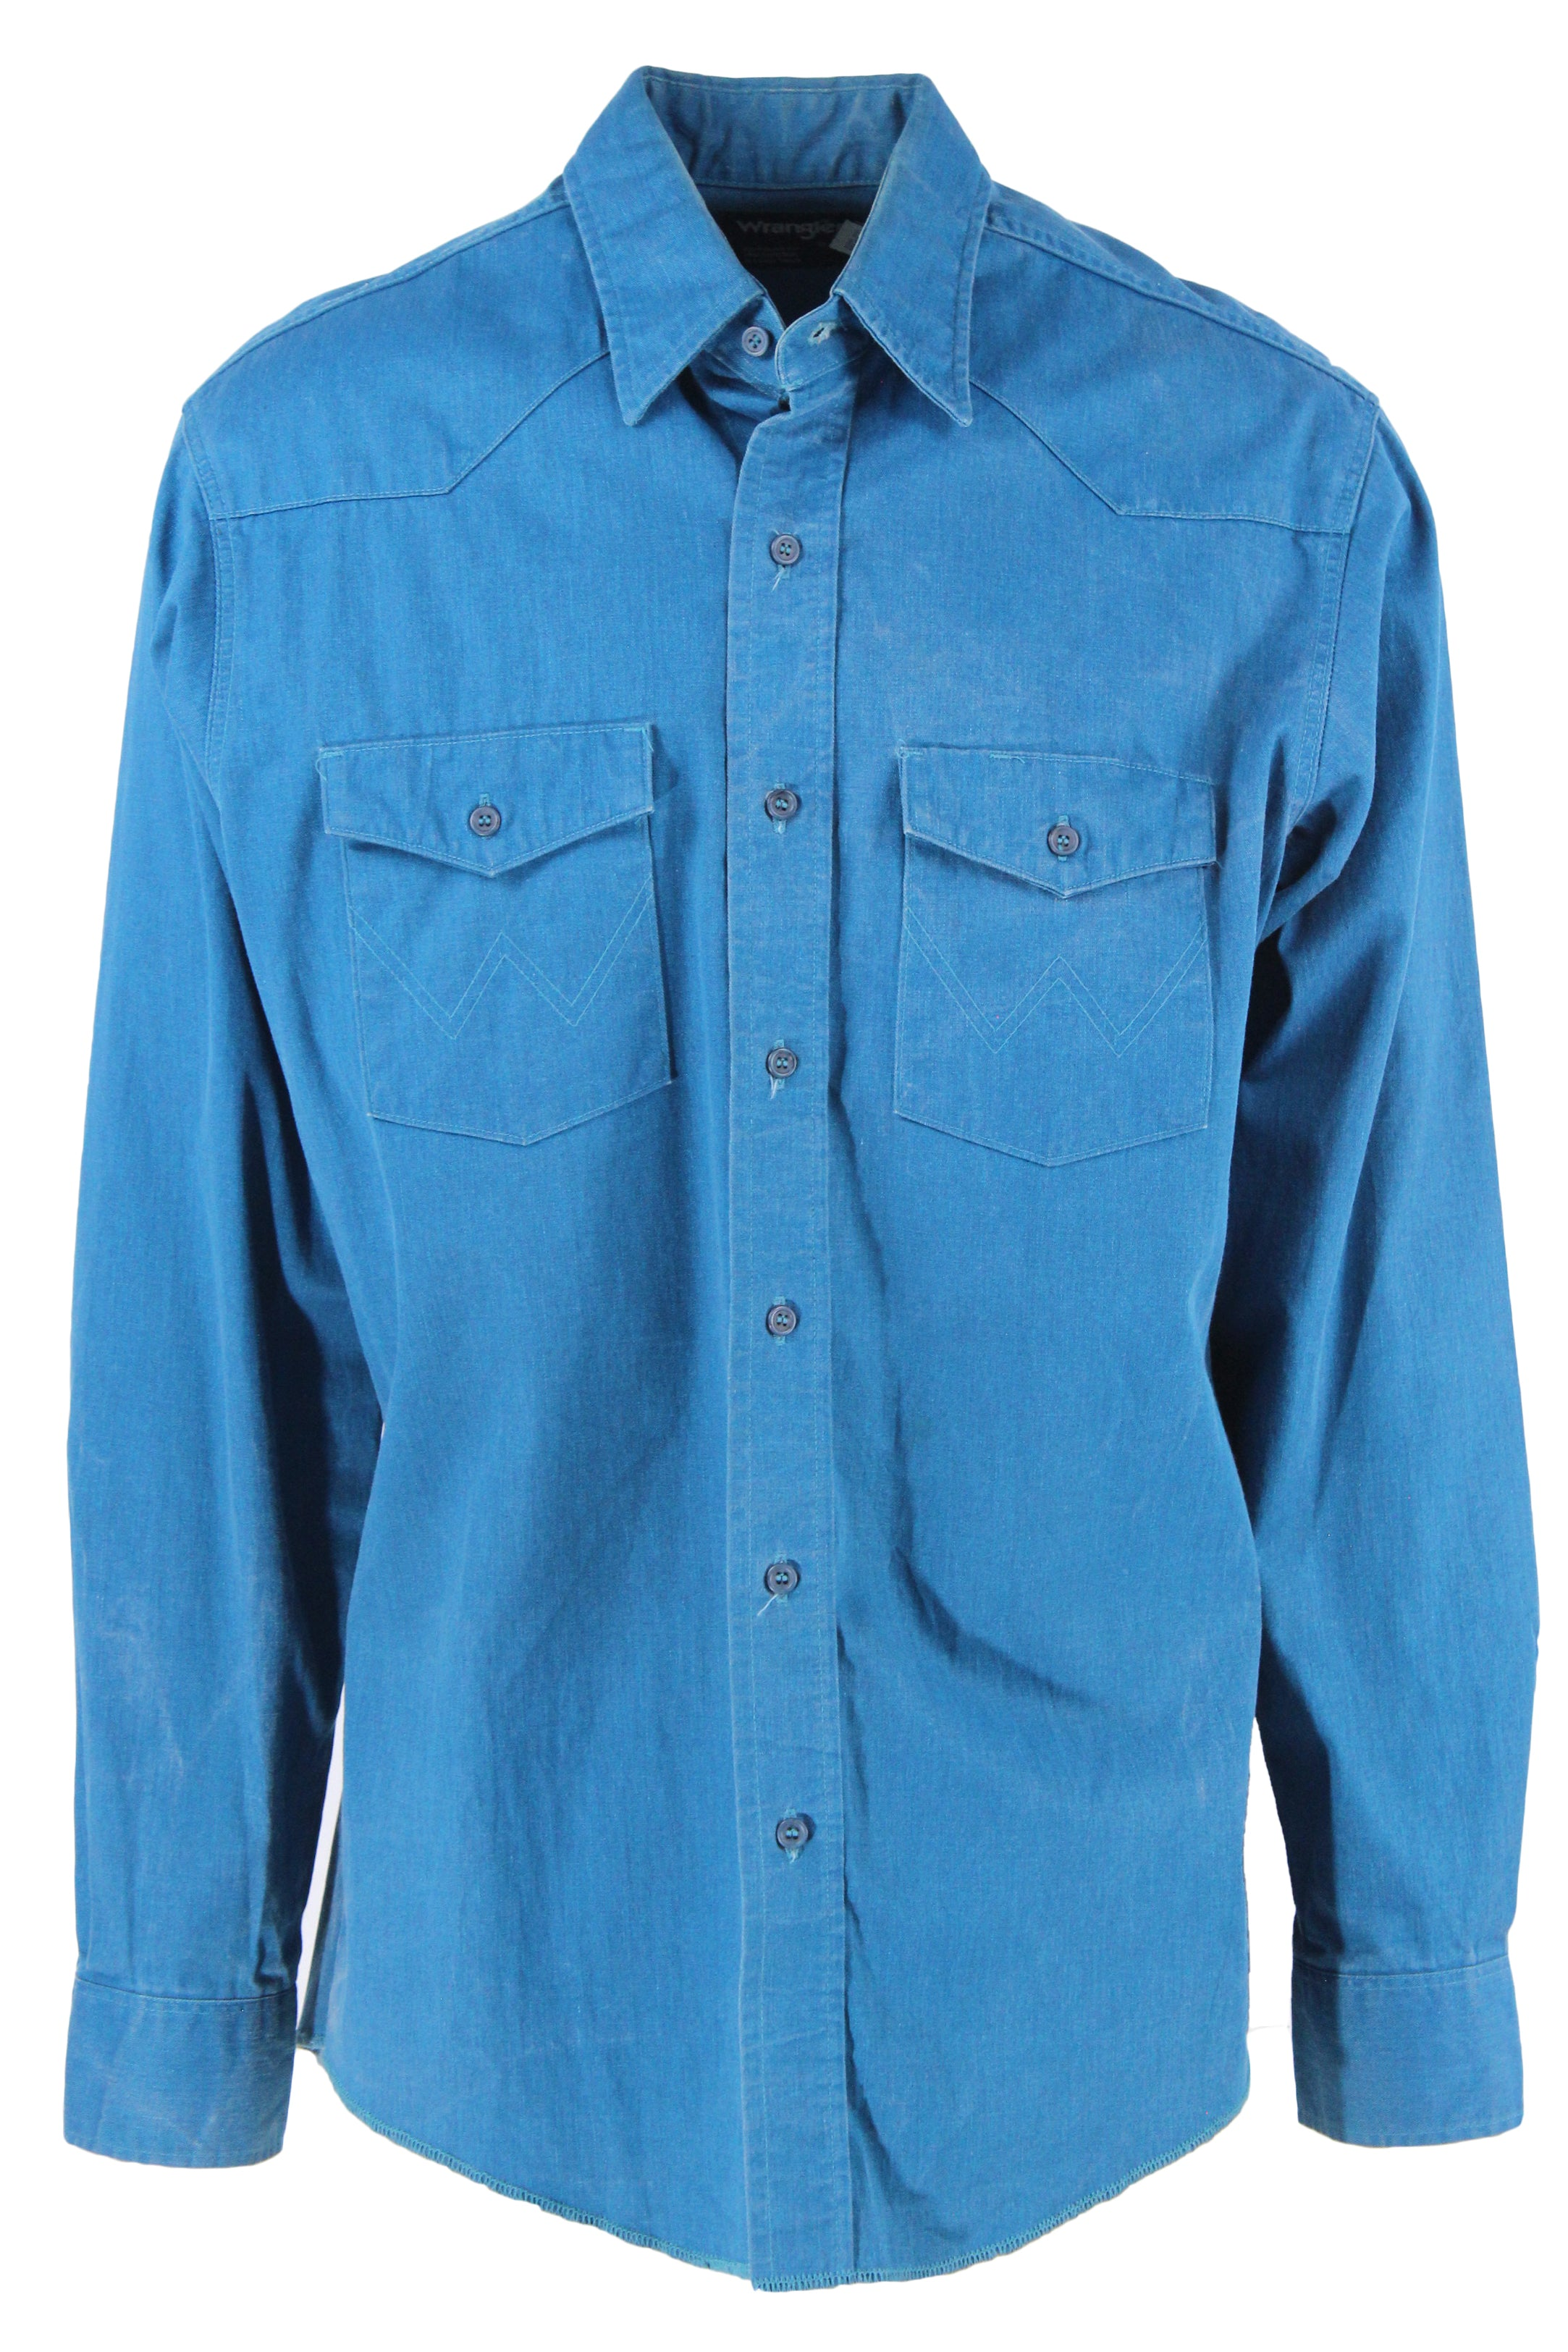 vintage wrangler teal long sleeve button down western shirt. features topstitched flap chest pockets and extra-long tails in a regular fit.